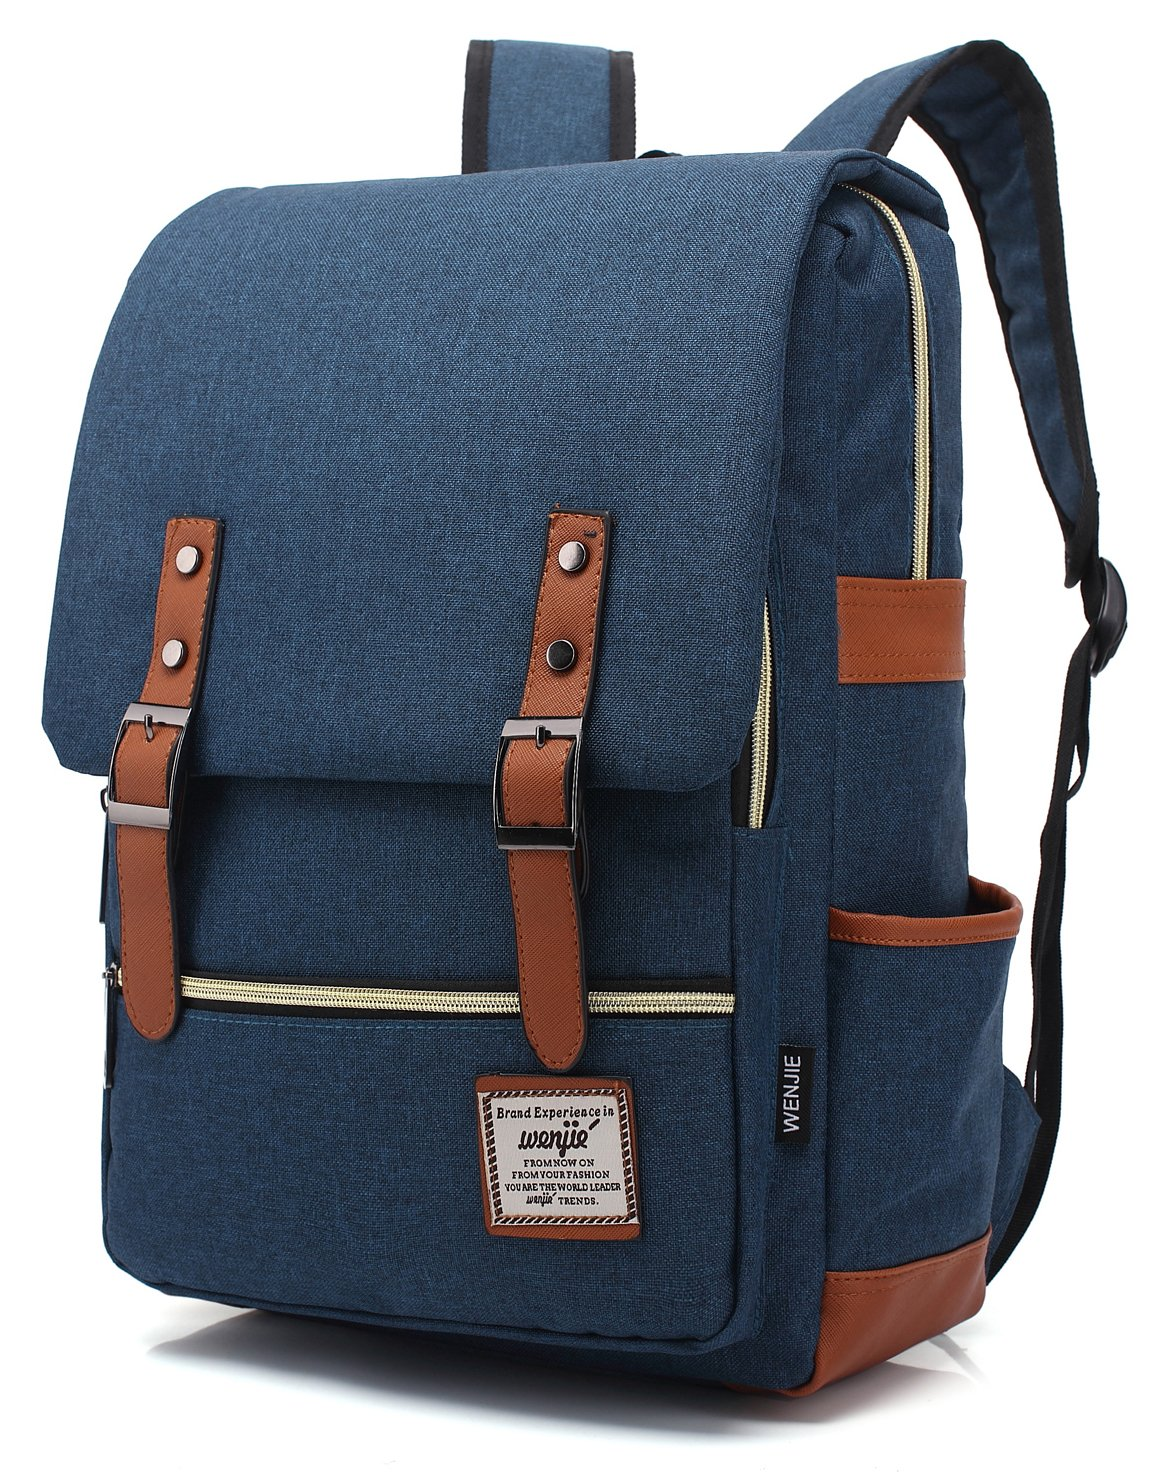 Mn&Sue British Style Casual Unisex Waterproof Oxford School Backpack Rucksack (Dark Blue)